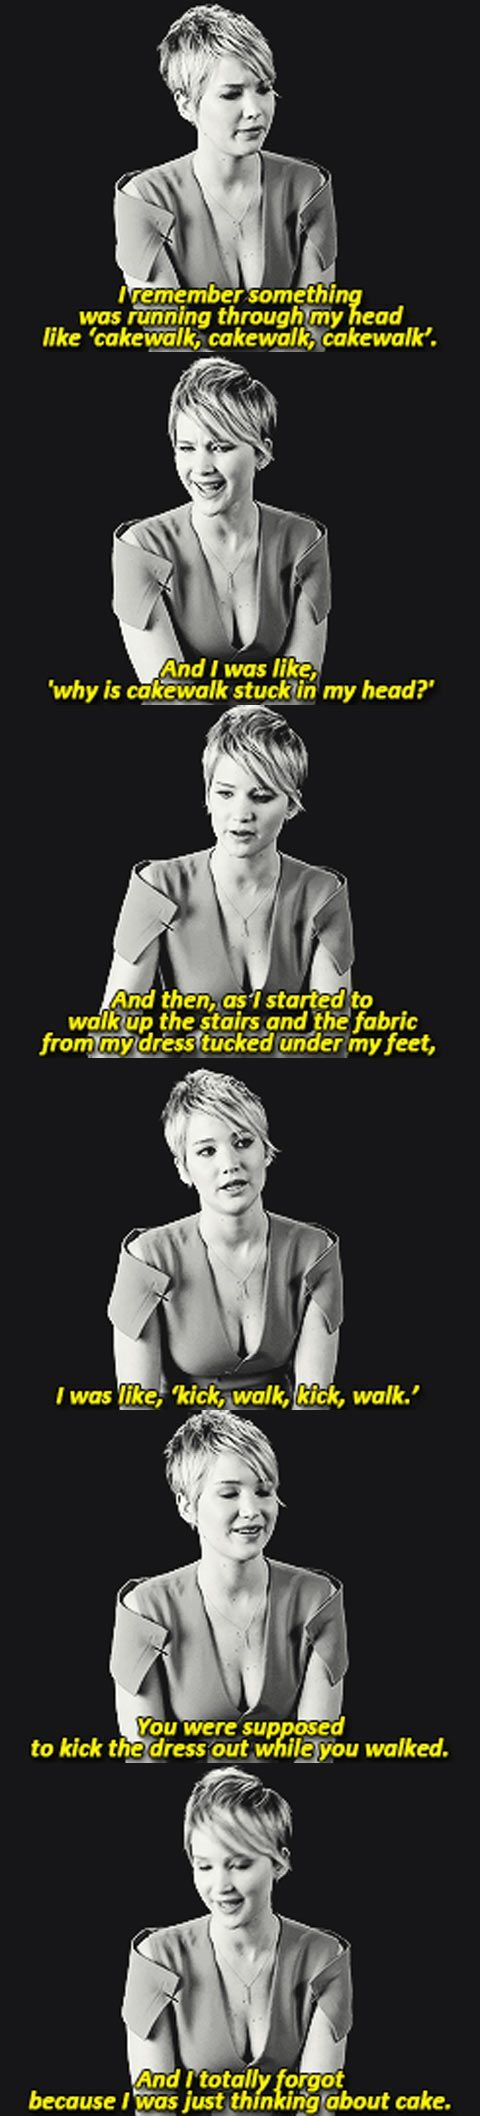 Jennifer Lawrence talks about her fall at the Oscars. We'd totally be friends!   Read More Funny:    http://wdb.es/?utm_campaign=wdb.esutm_medium=pinterestutm_source=pinterst-descriptionutm_content=utm_term=